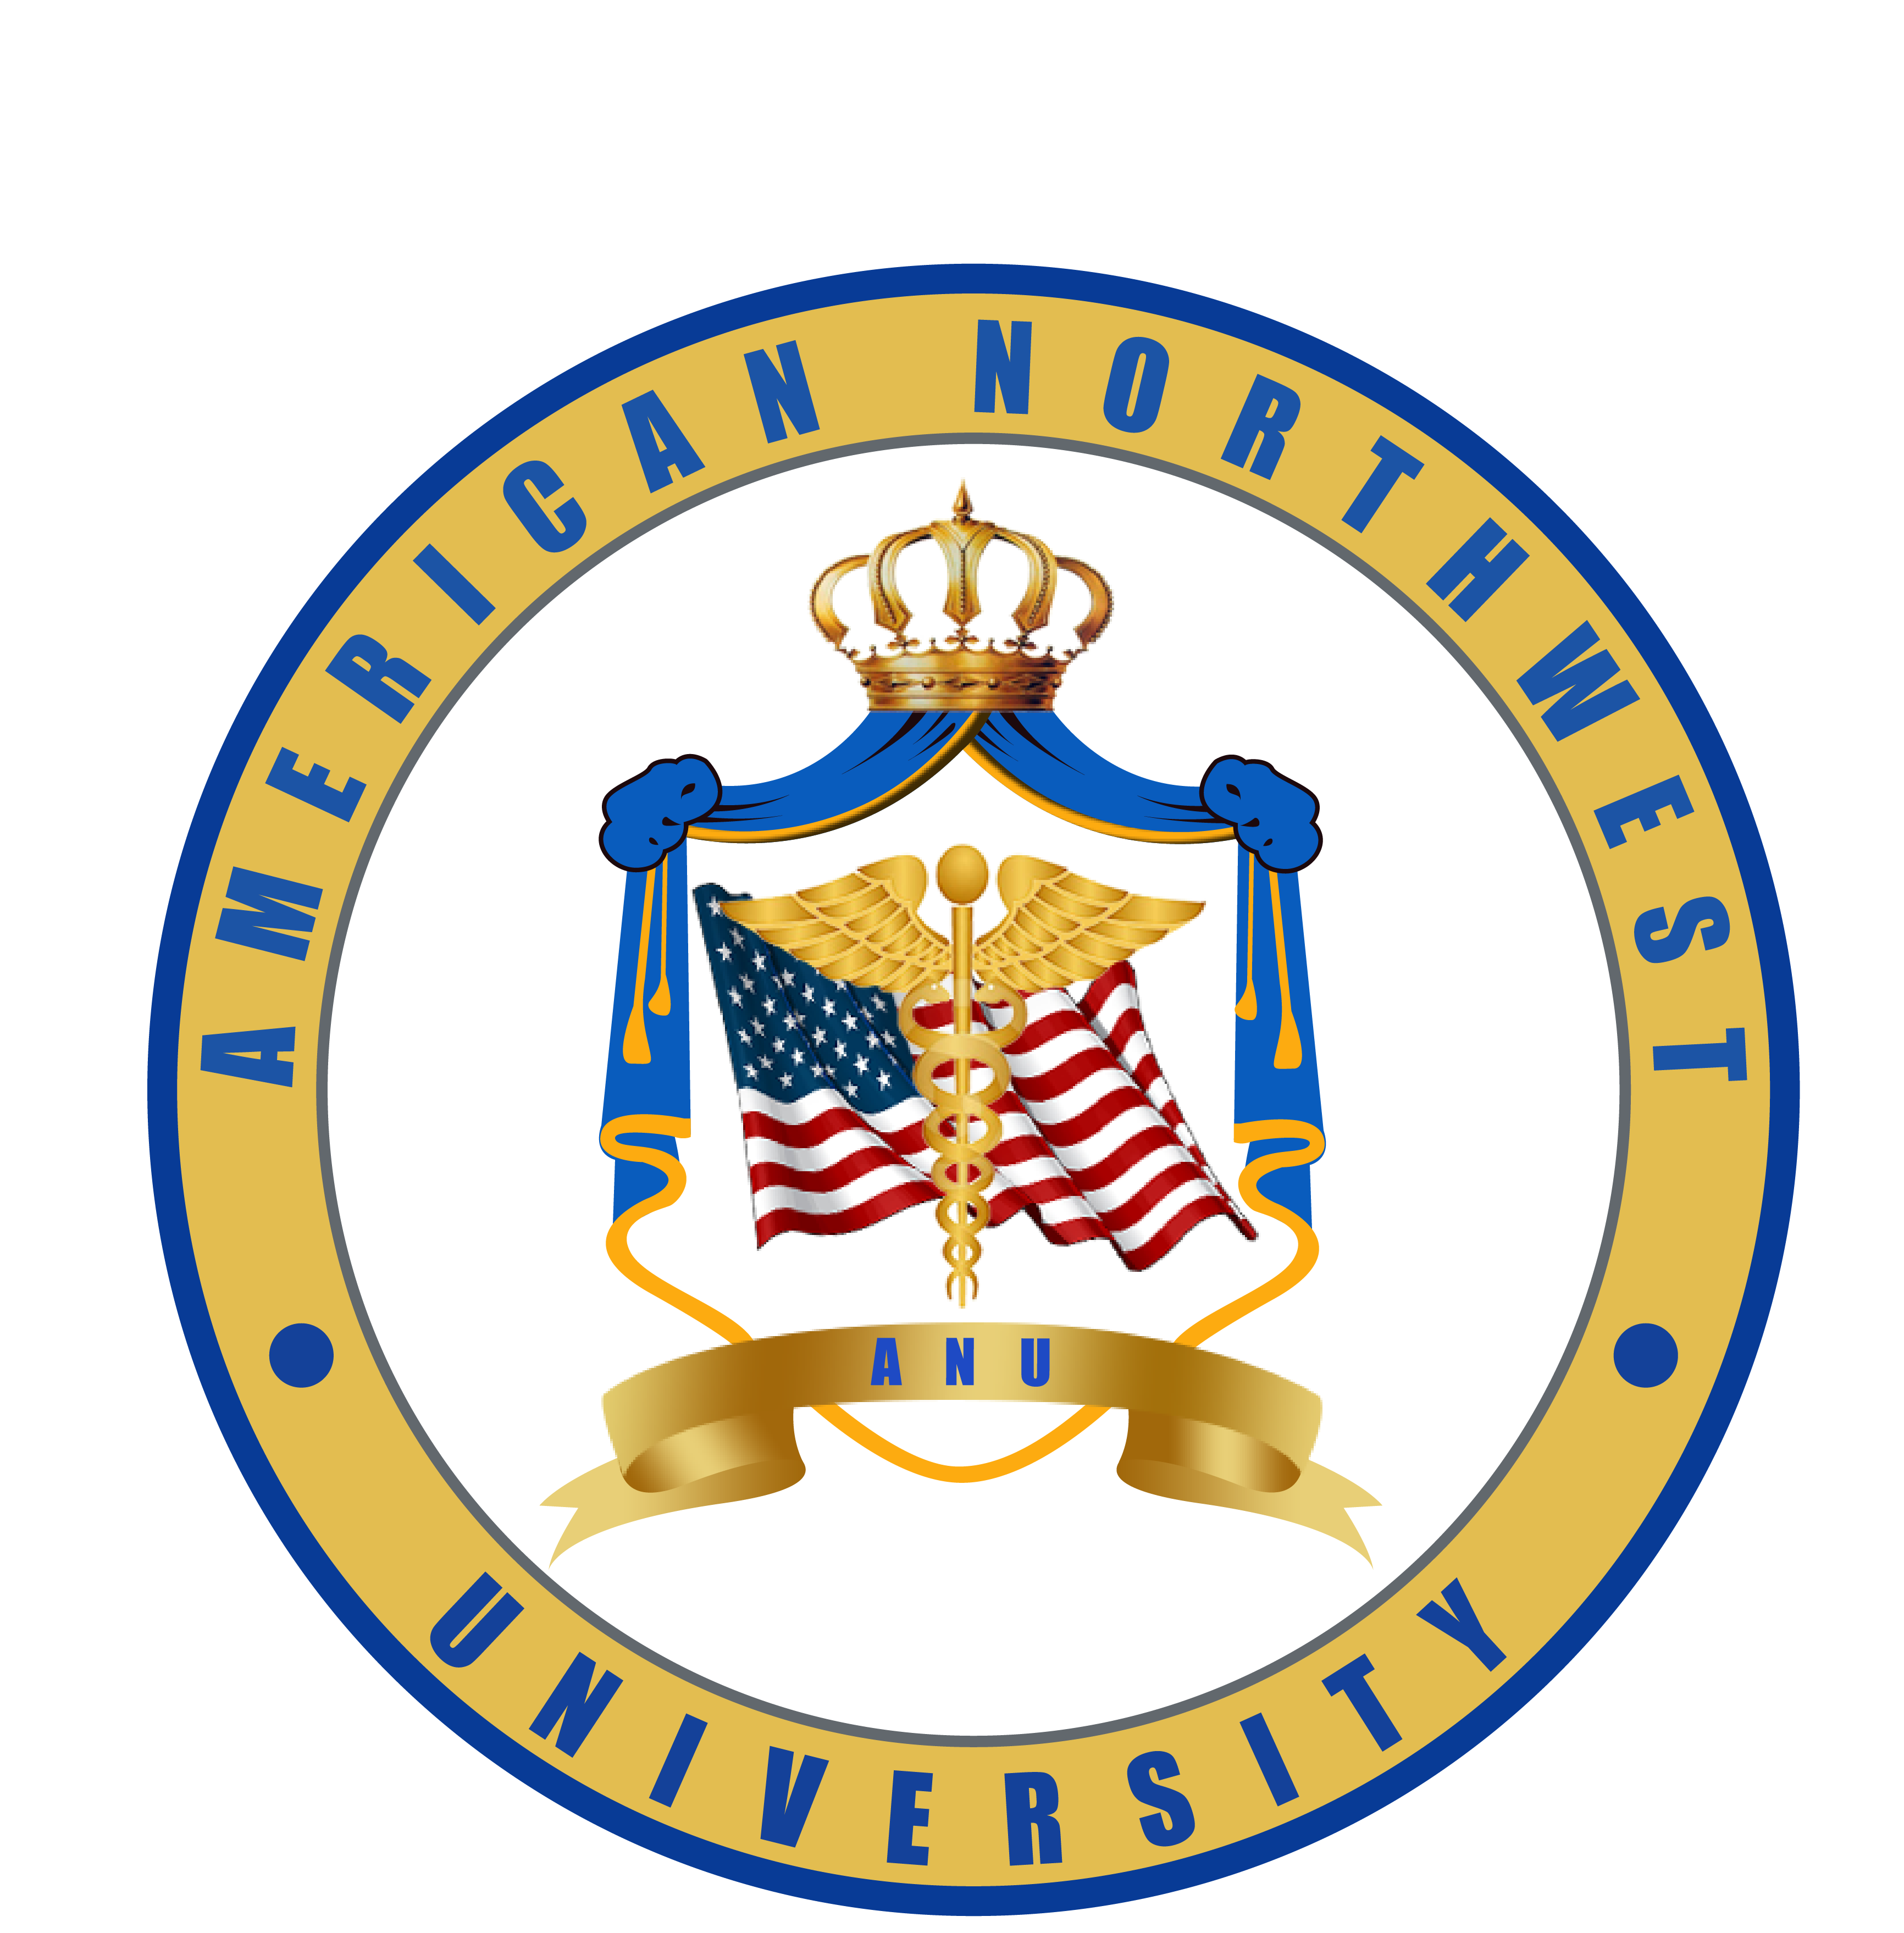 American Northwest University